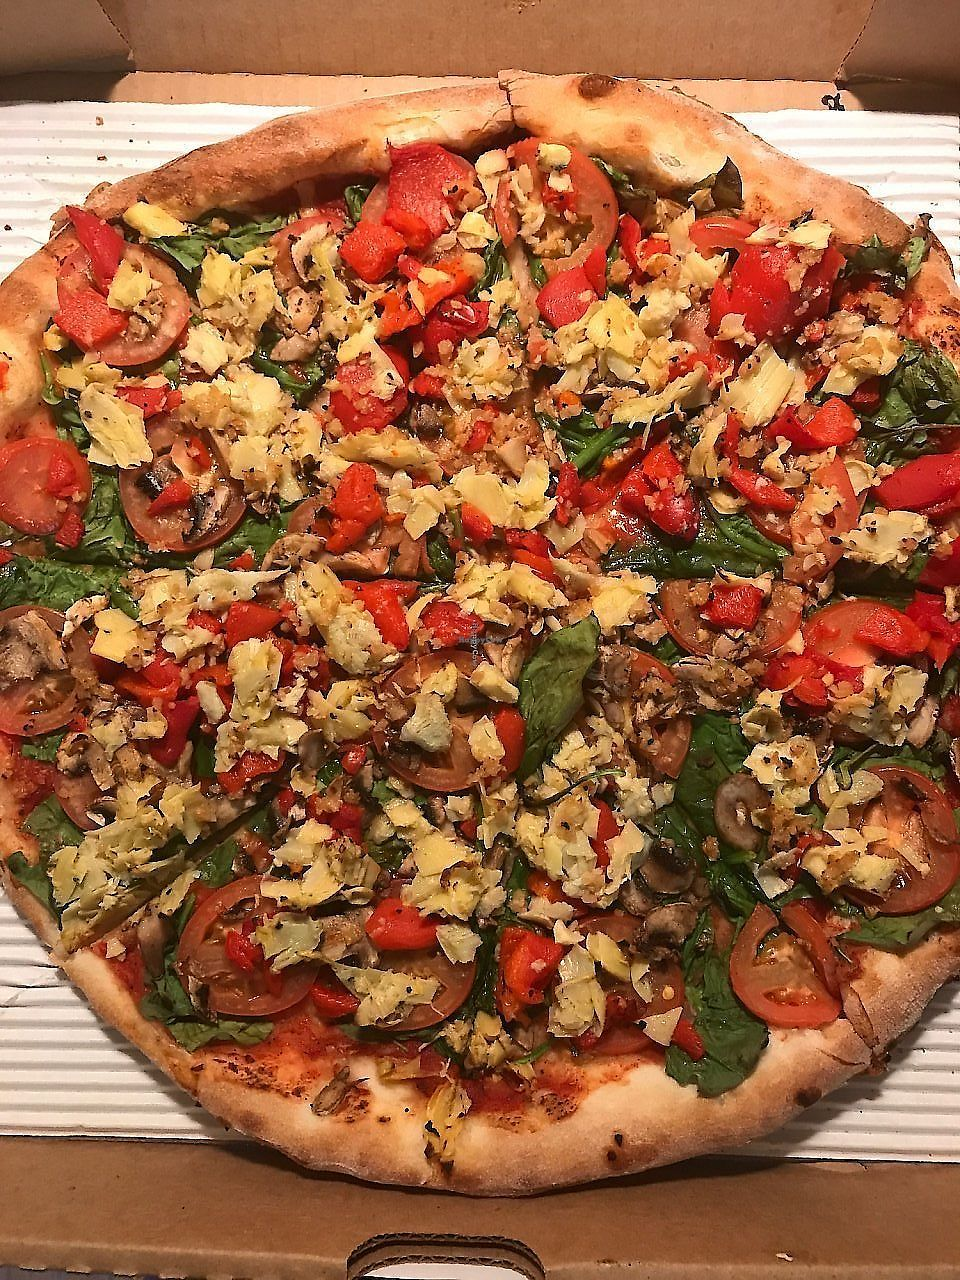 """Photo of Peace Love and Pizza - Towne Lake  by <a href=""""/members/profile/KerryElise"""">KerryElise</a> <br/>They also have Daiya, but I prefer no cheese <br/> August 29, 2017  - <a href='/contact/abuse/image/59365/308928'>Report</a>"""